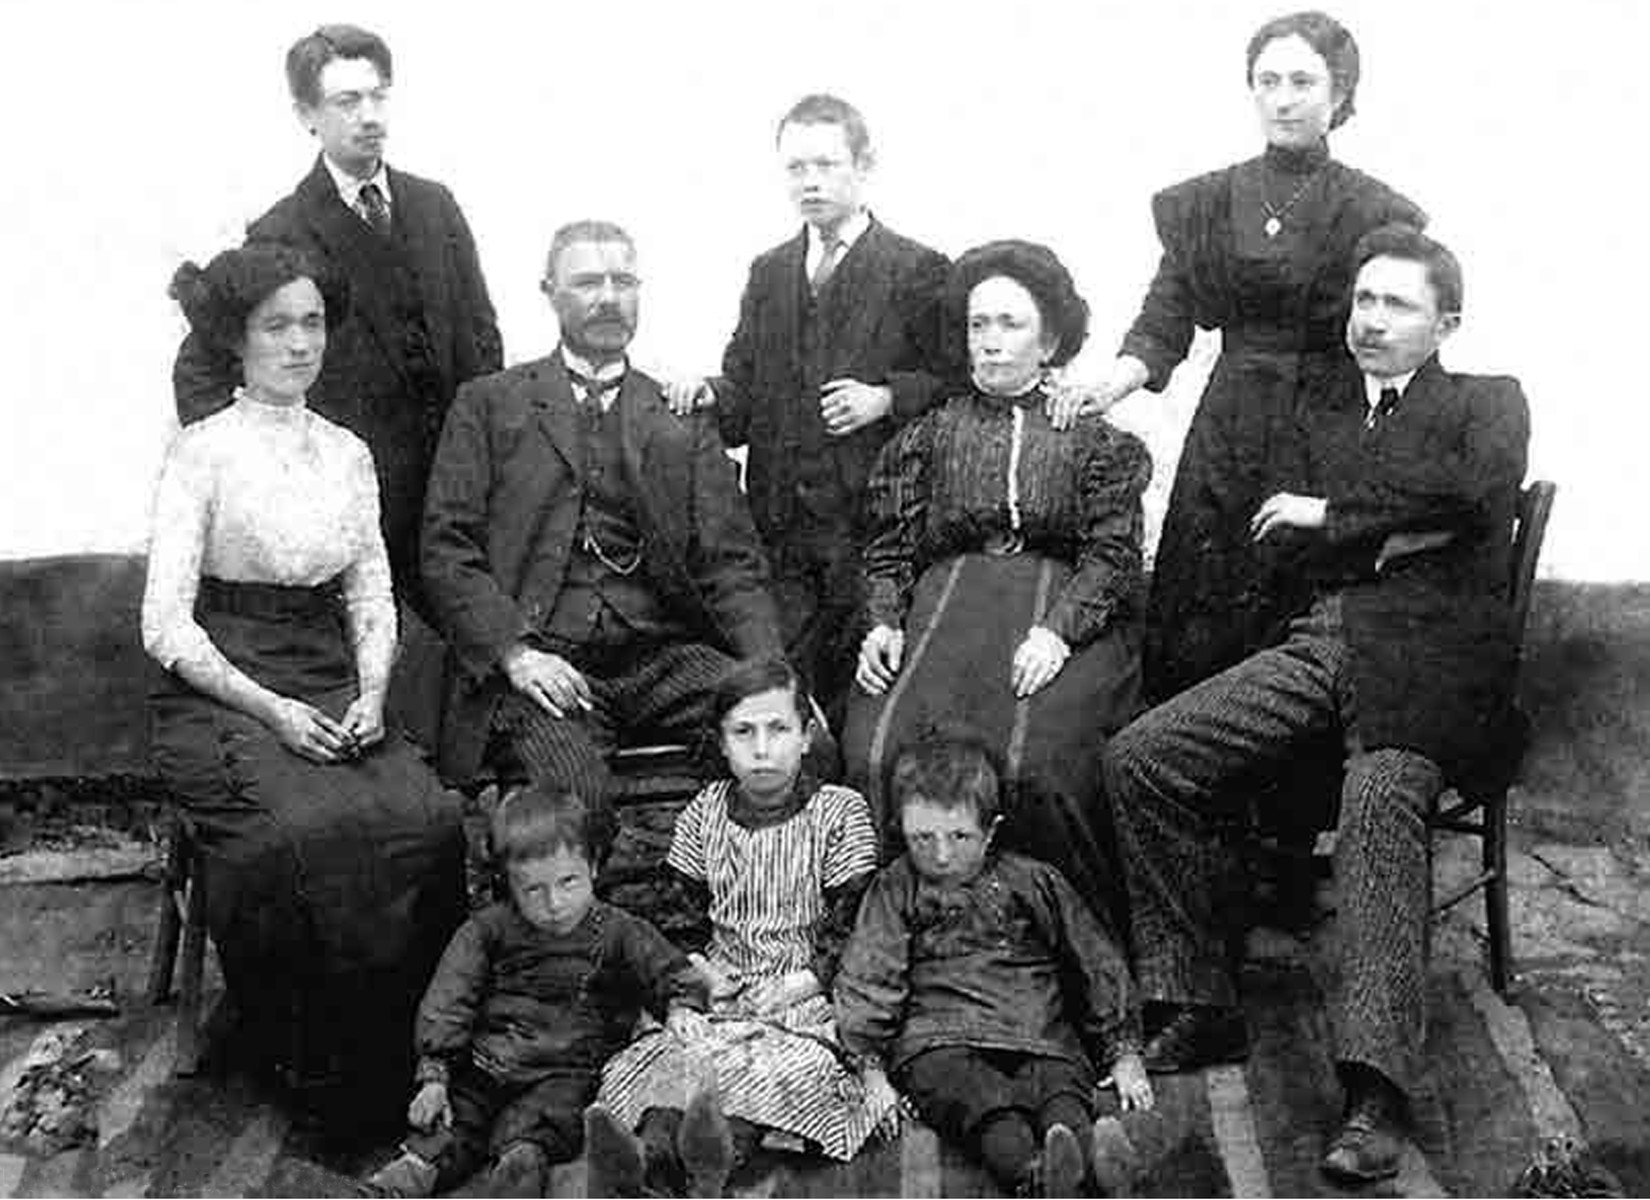 Portrait of a Jewish family in Kyustendil, Bulgaria.  Pictured are Pinkas and Miriam Baruch (the grandparents of Israel Baruch) and their eight children.  Standing from left to right are: Samuel, Joseph and Victoria Baruch.  Seated in the middle row, from left to right, are: Kadena, Pinkas, Miriam and Yako Baruch.  Sitting on the floor, from left to right, are: Fidel, Oretta and Leon Baruch.